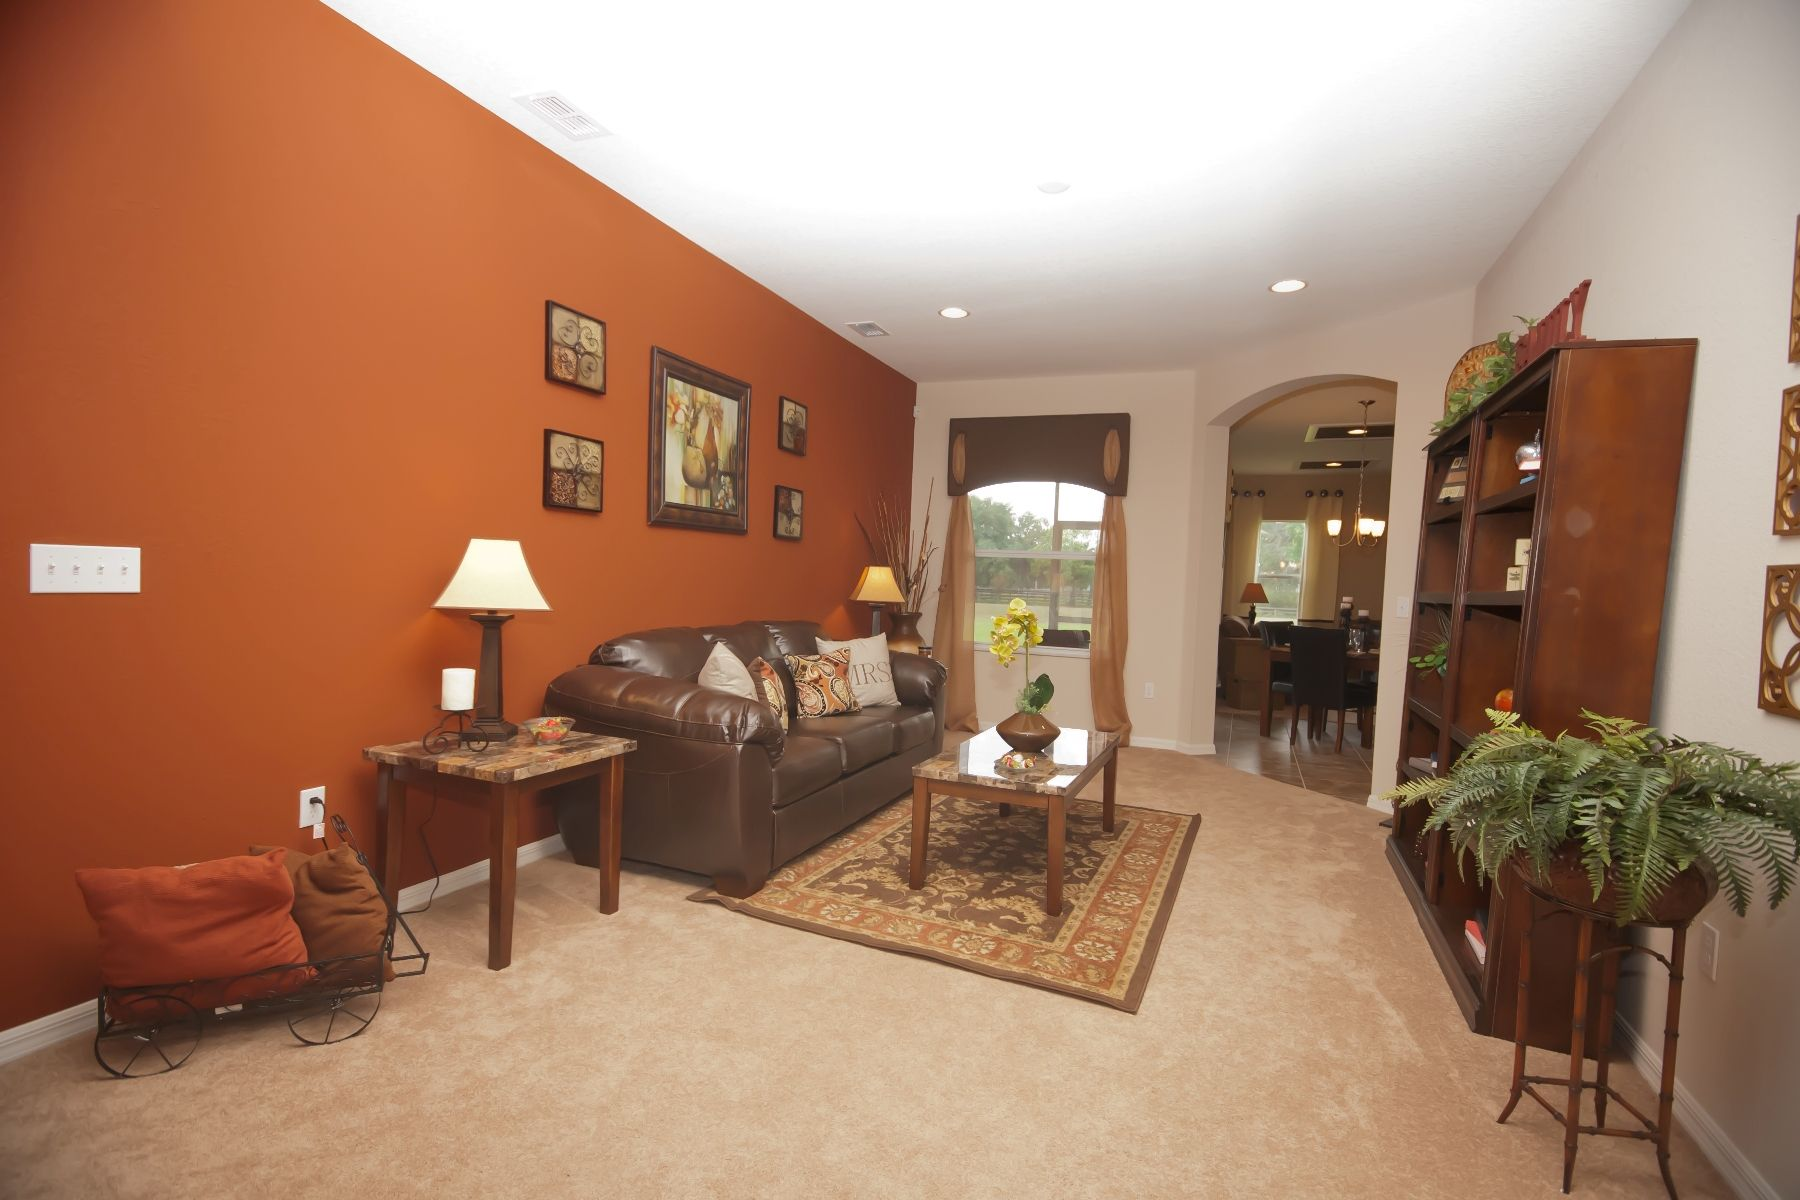 Burnt Orange Accent Wall Perfectly Pairs With The Neutral Furnishings And Flooring Highland Homes Williamson Ii Model Home In Plant City Fl